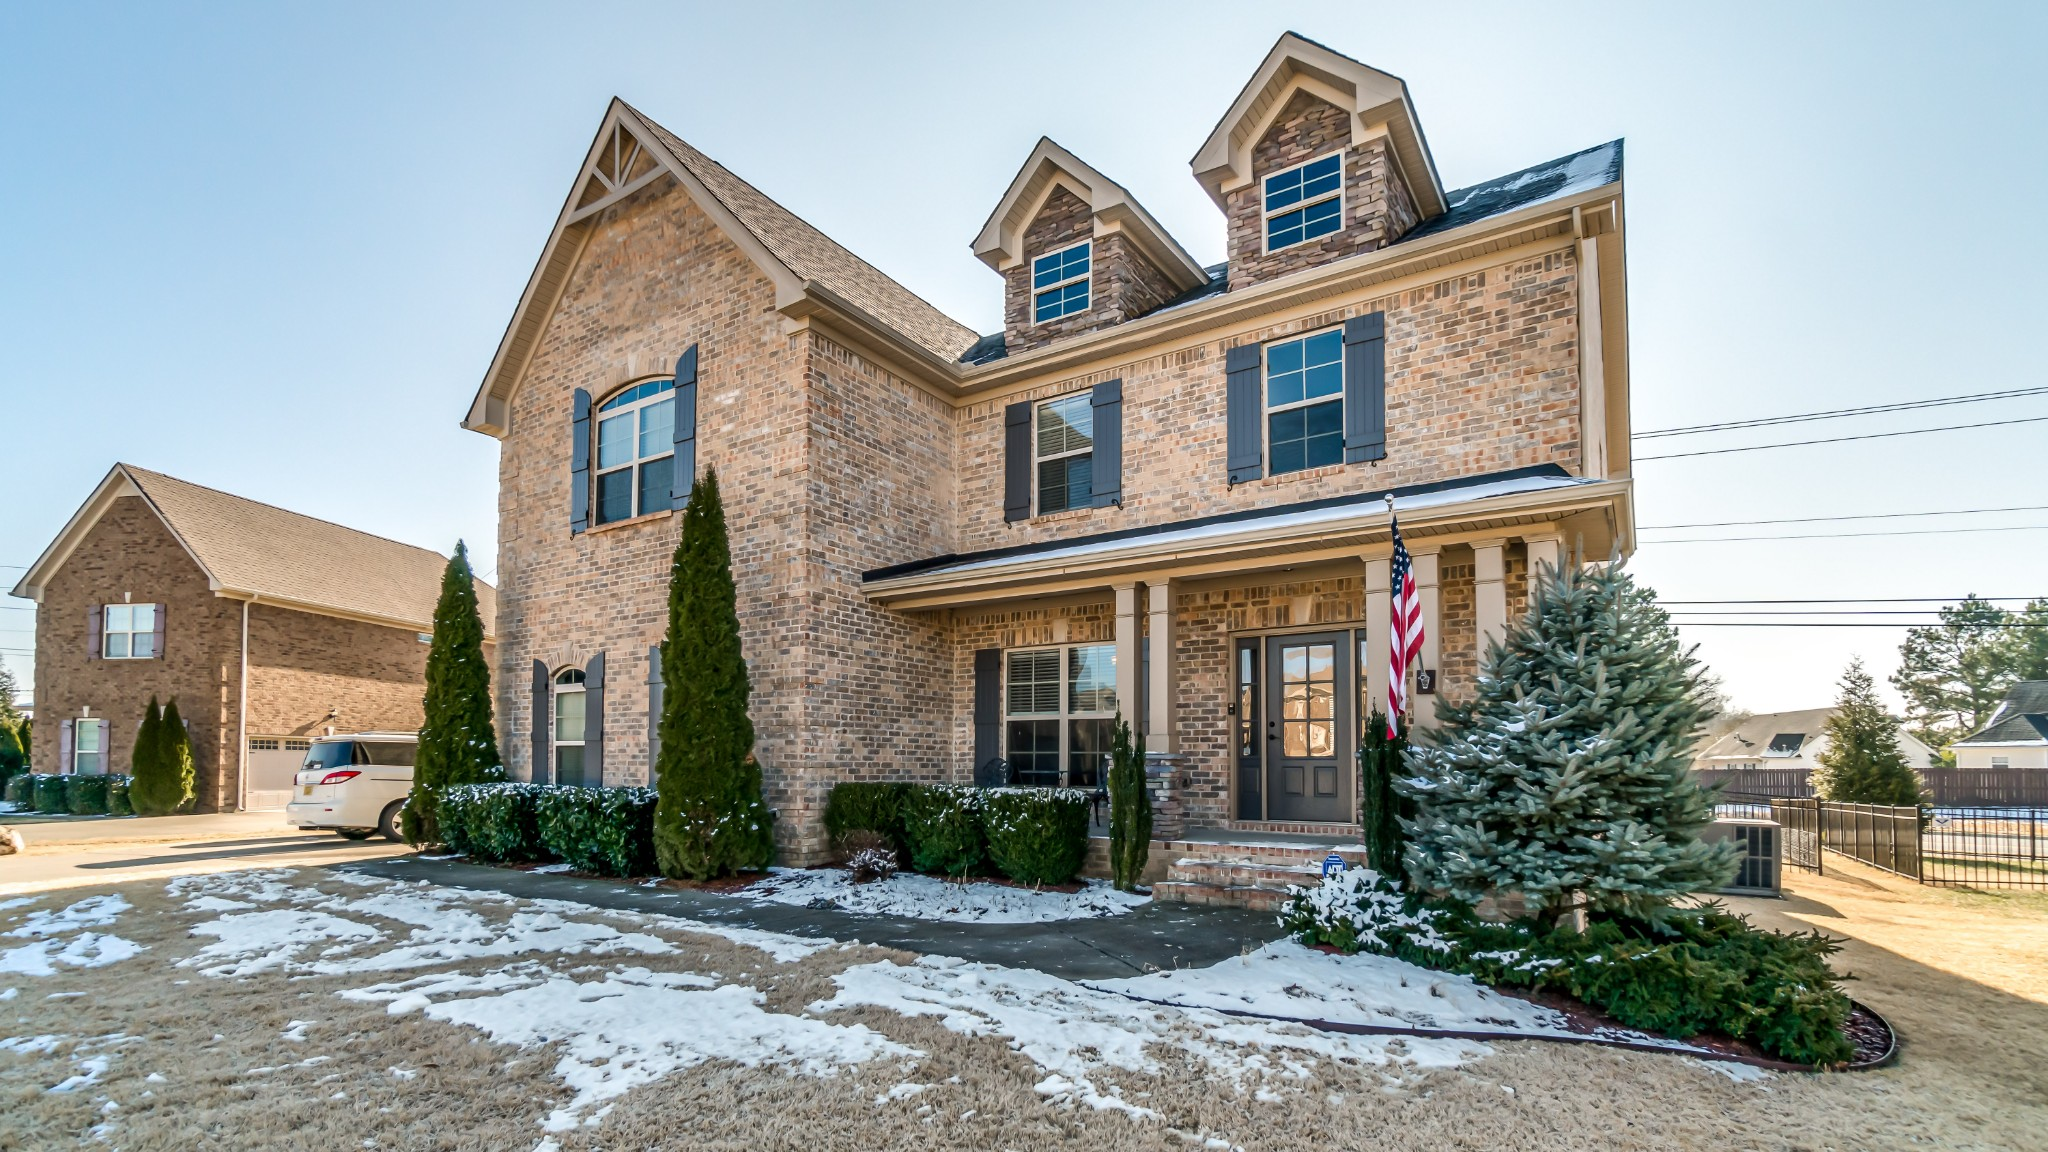 MULTIPLE OFFERS - PLEASE SUBMIT HIGHEST AND BEST BY 1/17/21 AT 6PM.  All brick & stone Williamson/Spring Hill home. Featuring a spacious, open kitchen/living area, full stone fireplace inside, 5 inch hardwoods. Enjoy your evenings on the fully covered side porch with arched entryways. You will LOVE this home and won't find anything to beat it on the market in this county! TV, lights & curtains on patio to remain. Please see notes in documents for further information.